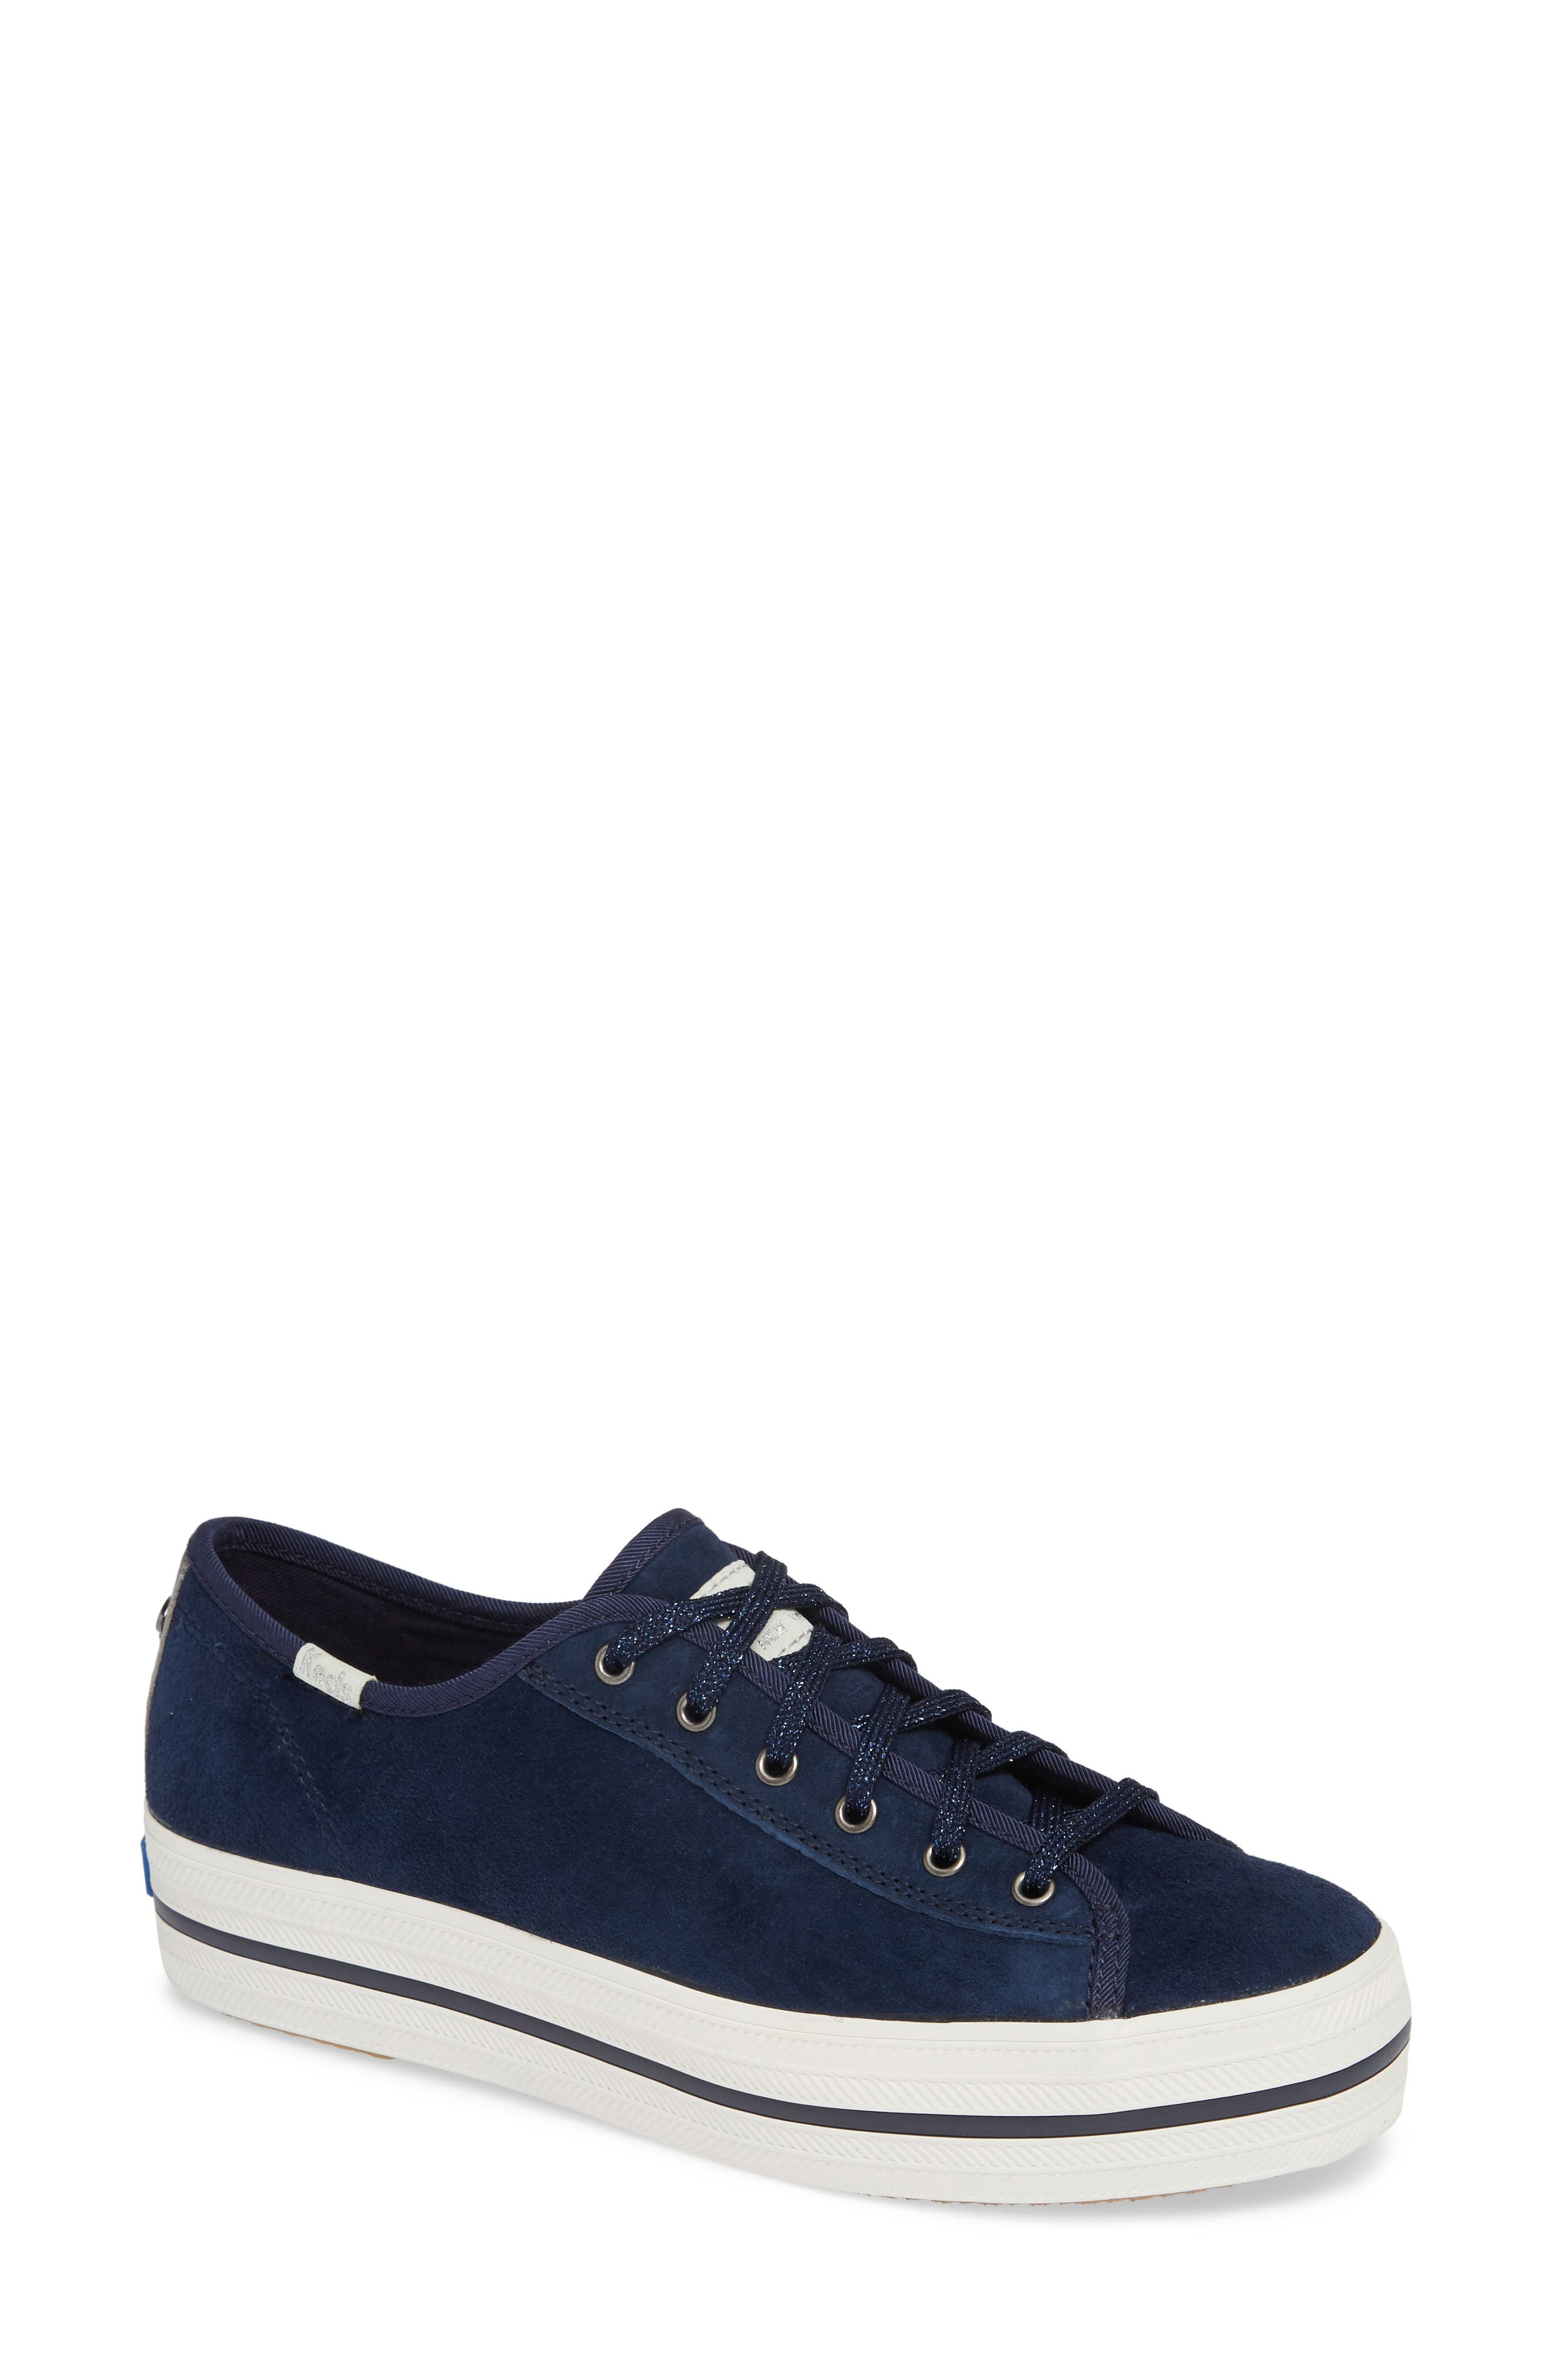 KEDS<SUP>®</SUP> FOR KATE SPADE NEW YORK, Keds<sup>®</sup> x kate spade new york triple kicks platform sneaker, Main thumbnail 1, color, NAVY SUEDE